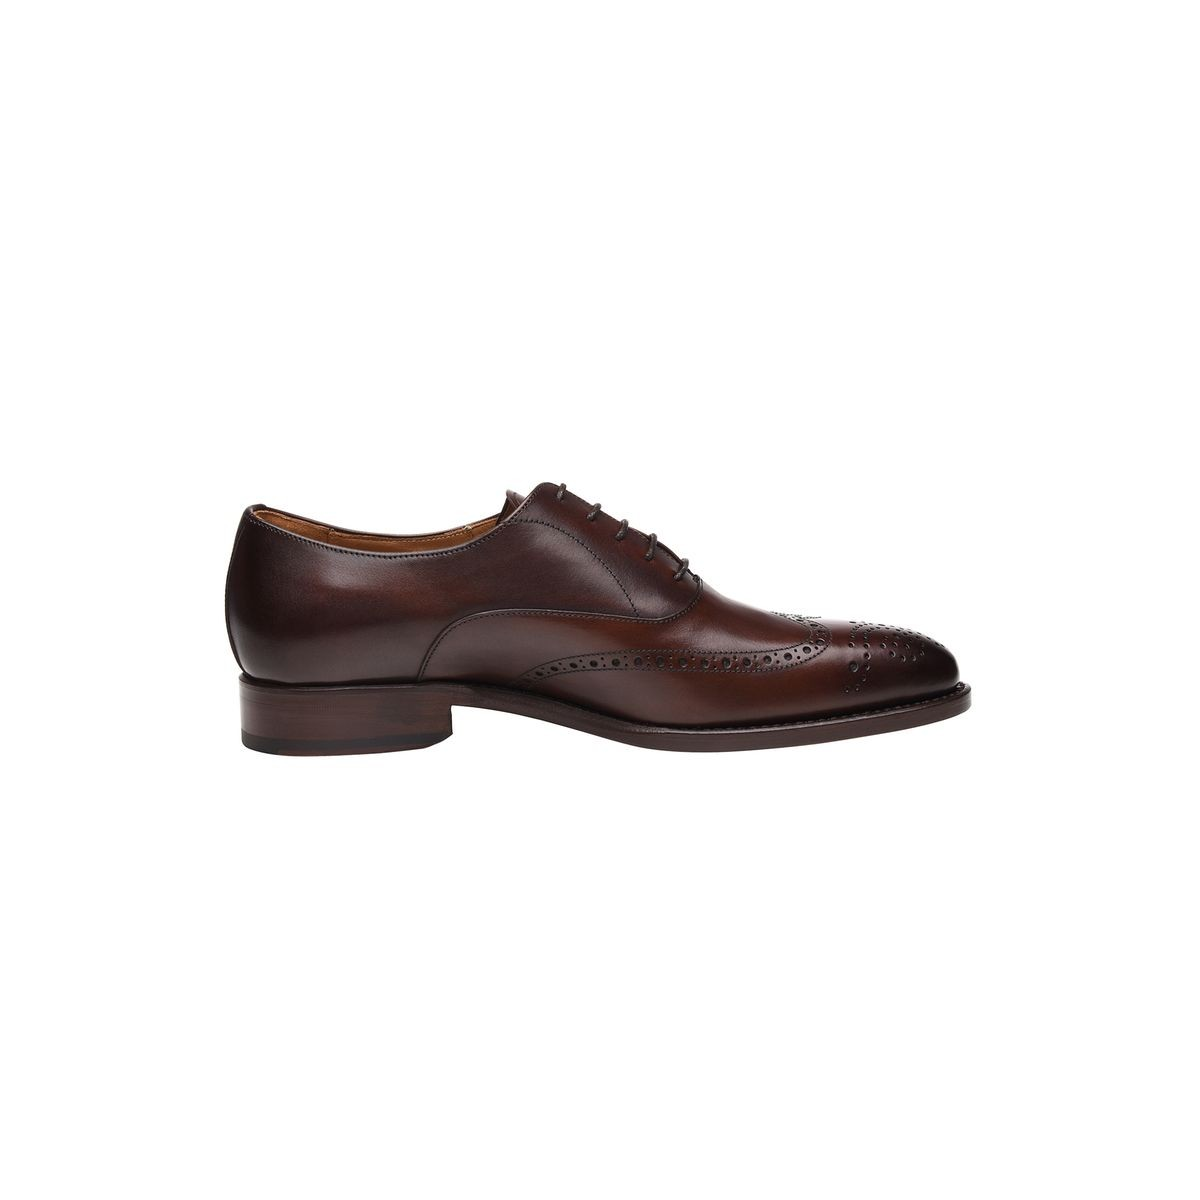 No. 5286 , Chaussures à lacets , Cuir | Products | Chaussure